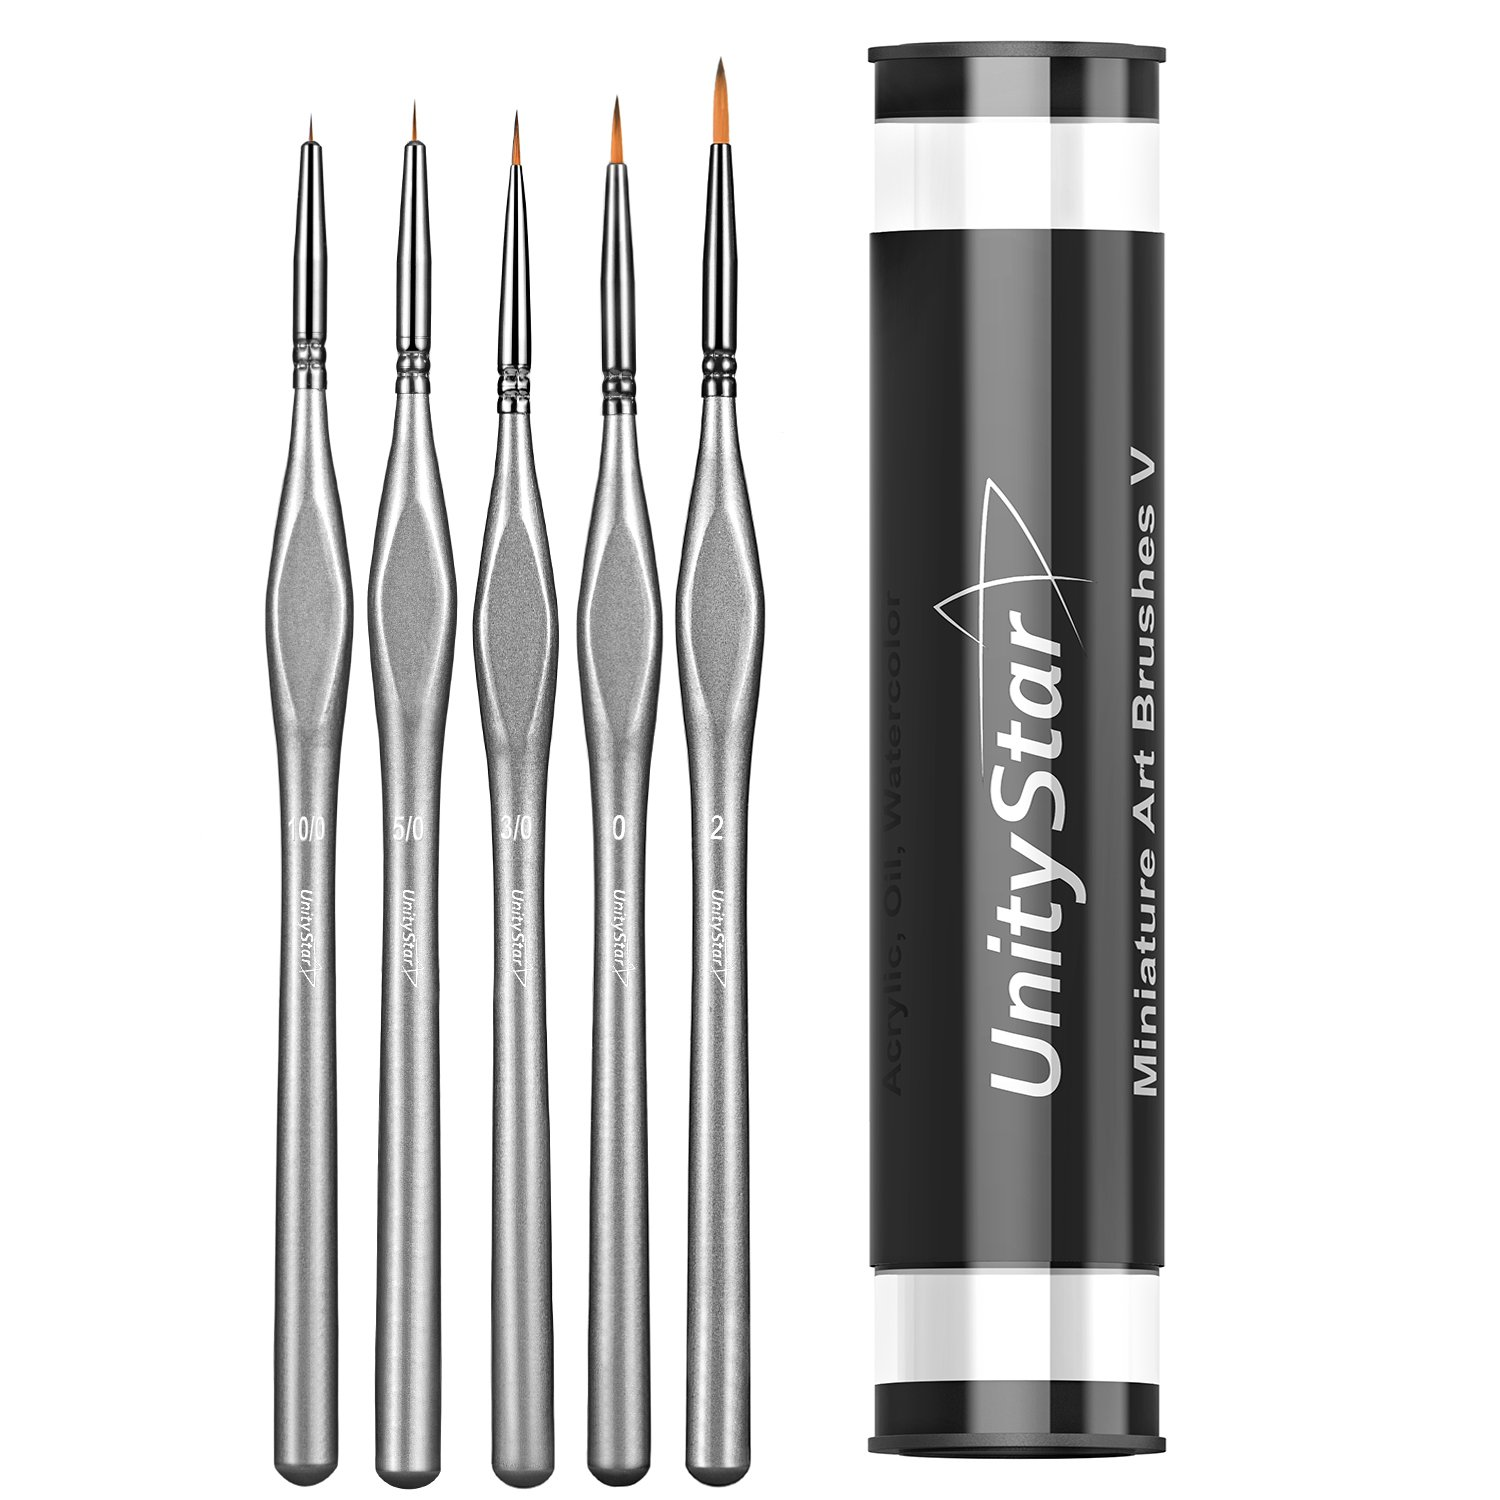 UnityStar 5-Set Miniature Paint Brush Detail Set for Fine Detailing, Acrylic, Watercolor, Model, Art and Face Painting, Plastic Holder Included